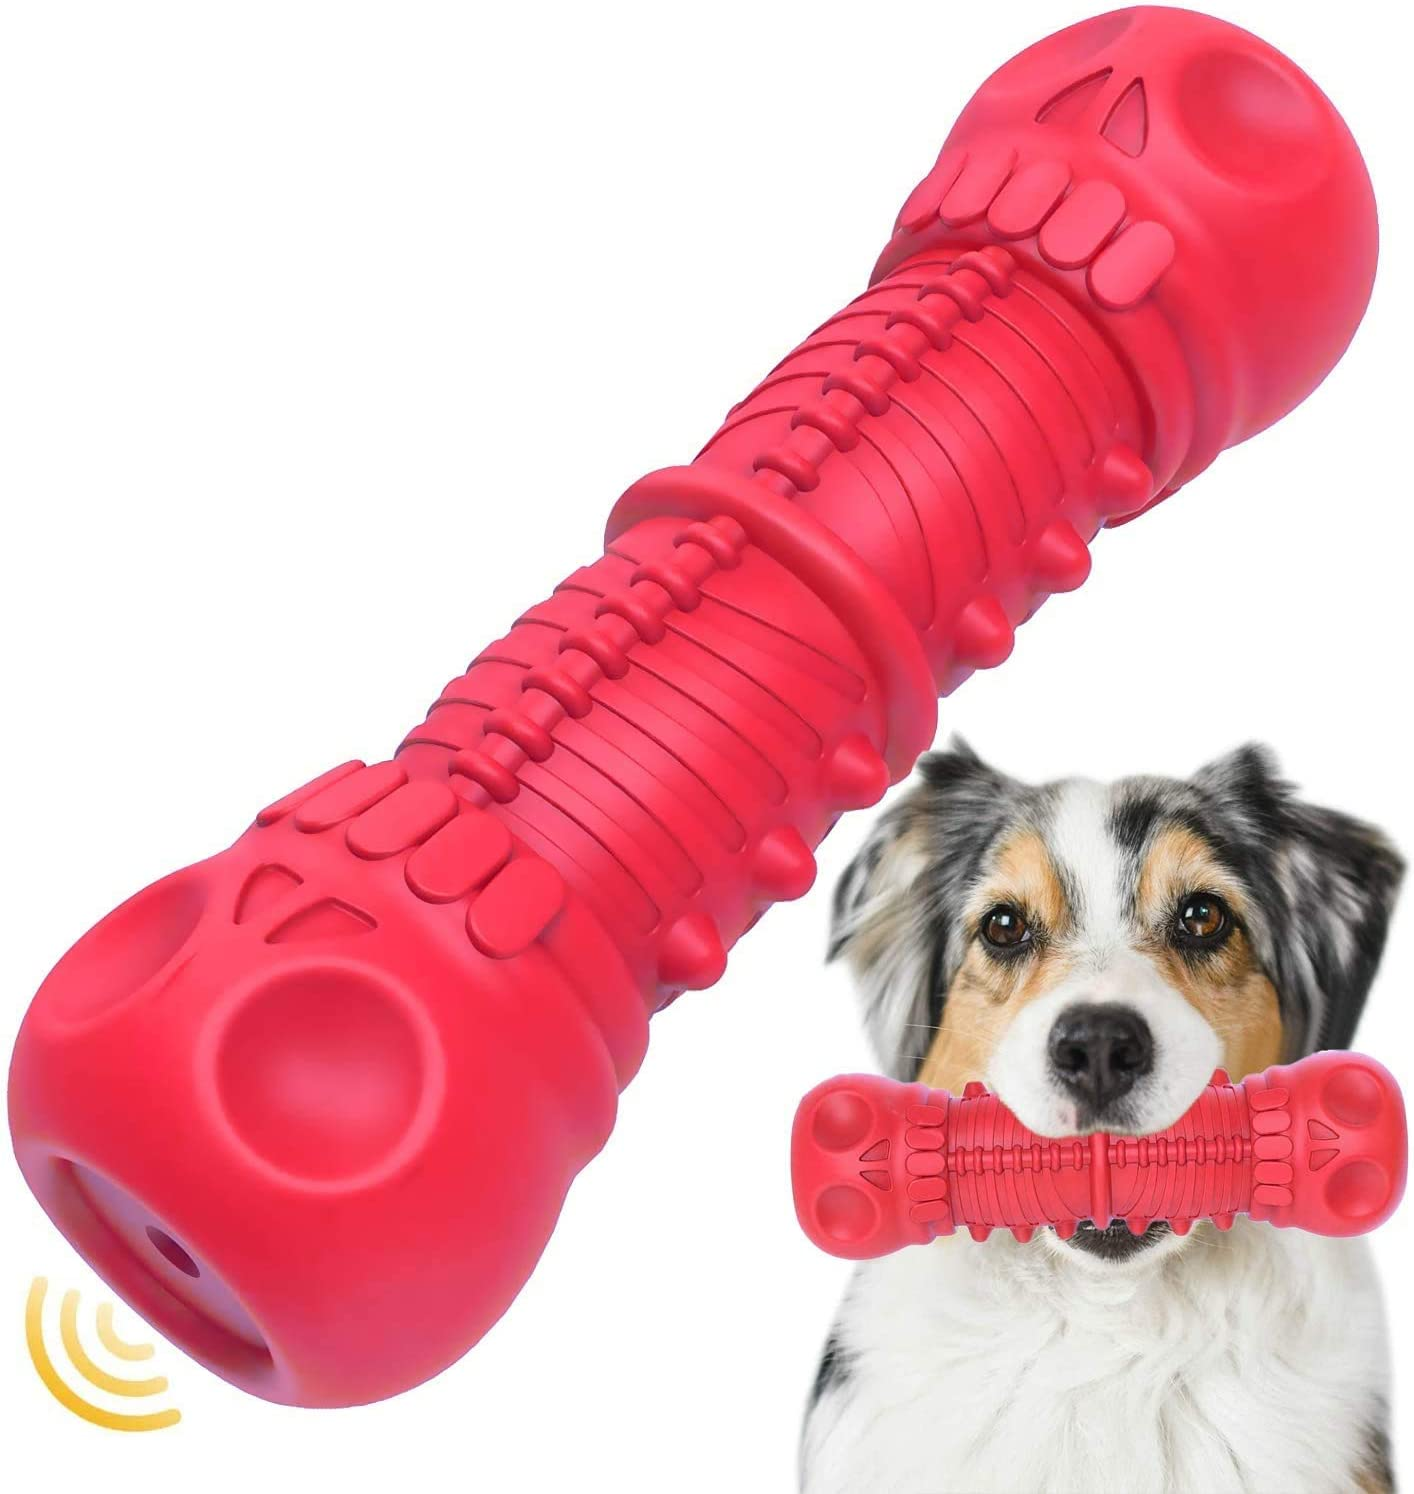 Dog Squeaky San trend rank Antonio Mall Toys Toughest Durable Rubber Chew Natural